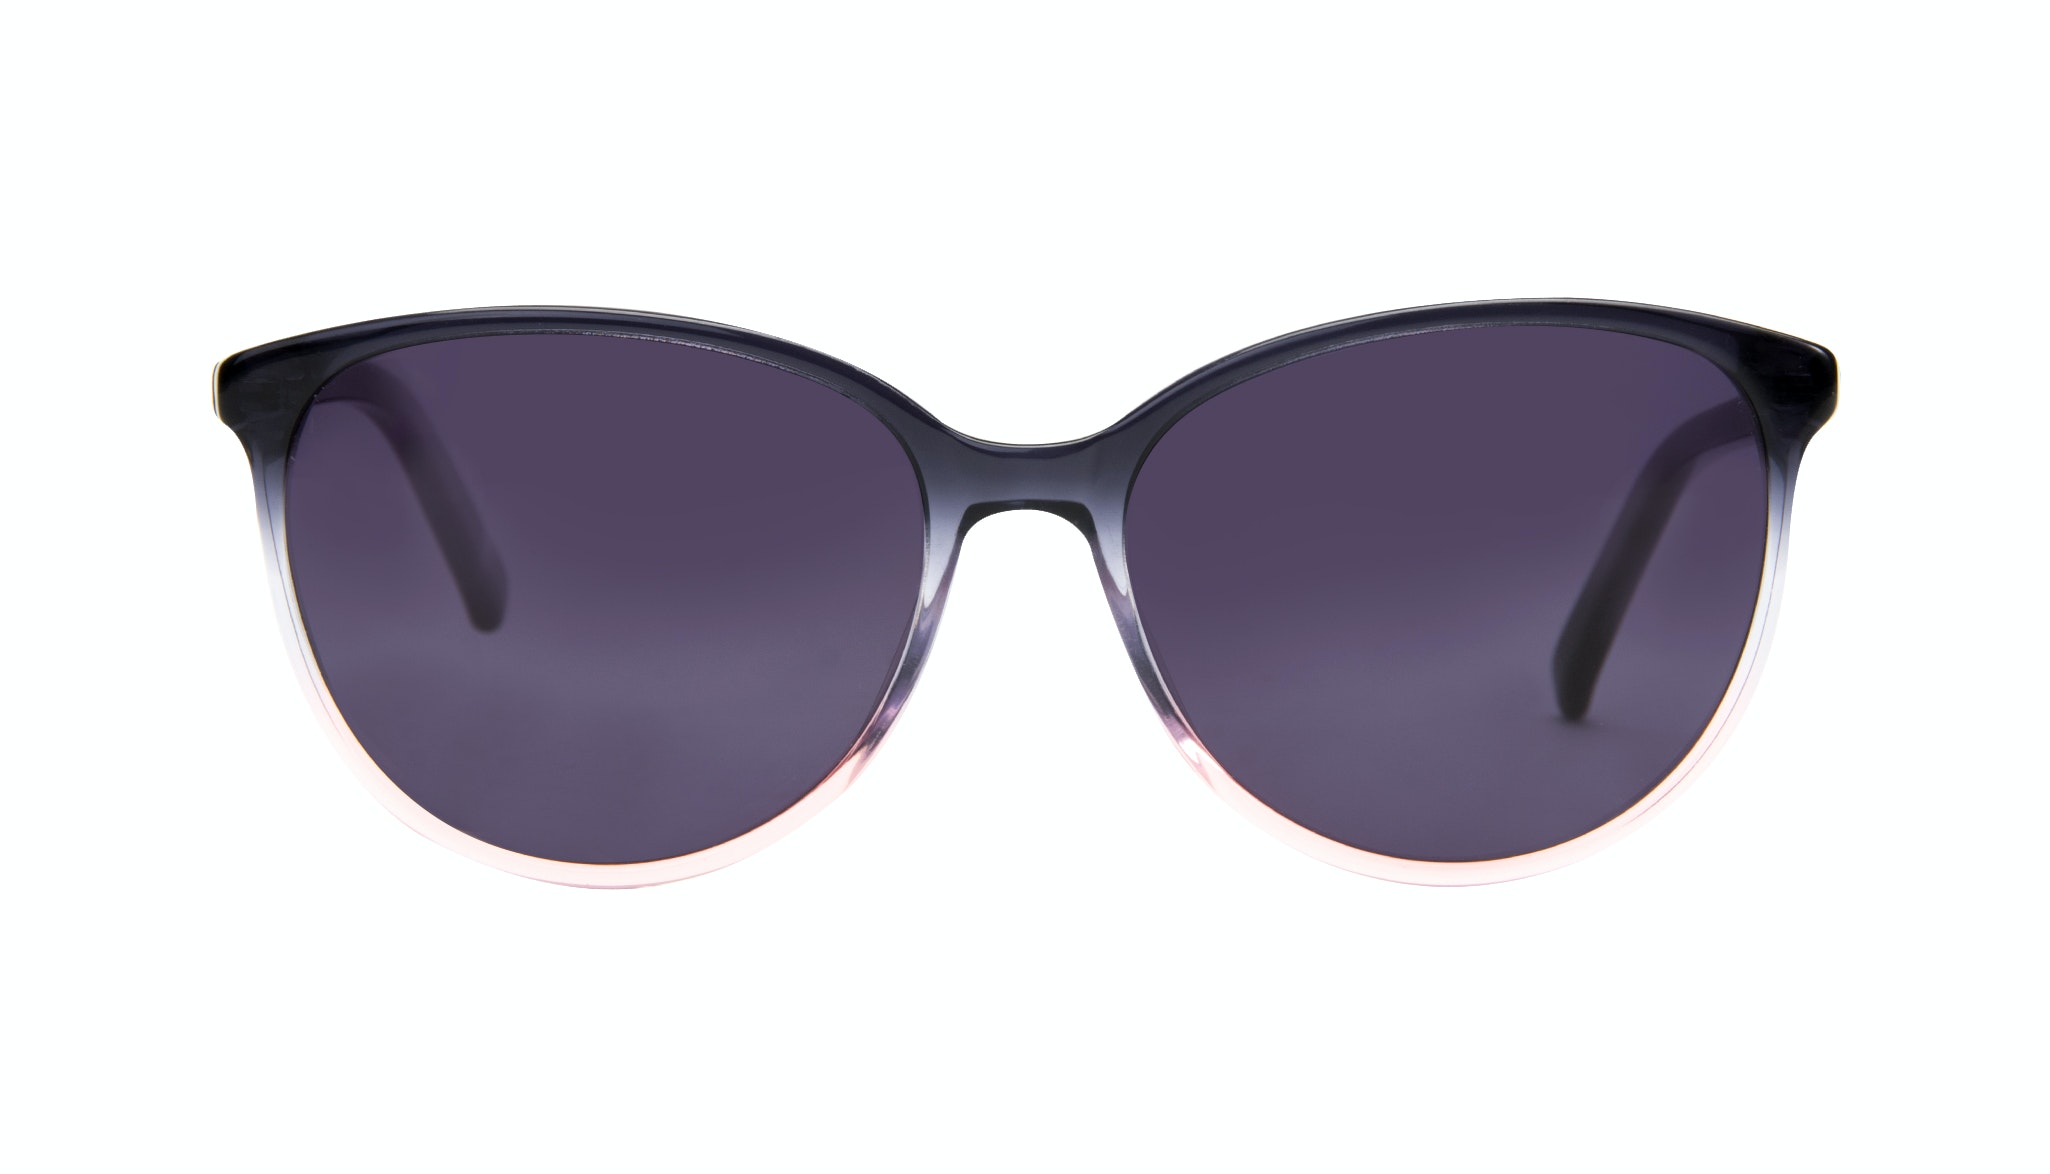 Affordable Fashion Glasses Round Sunglasses Women Imagine Pink Dust Front